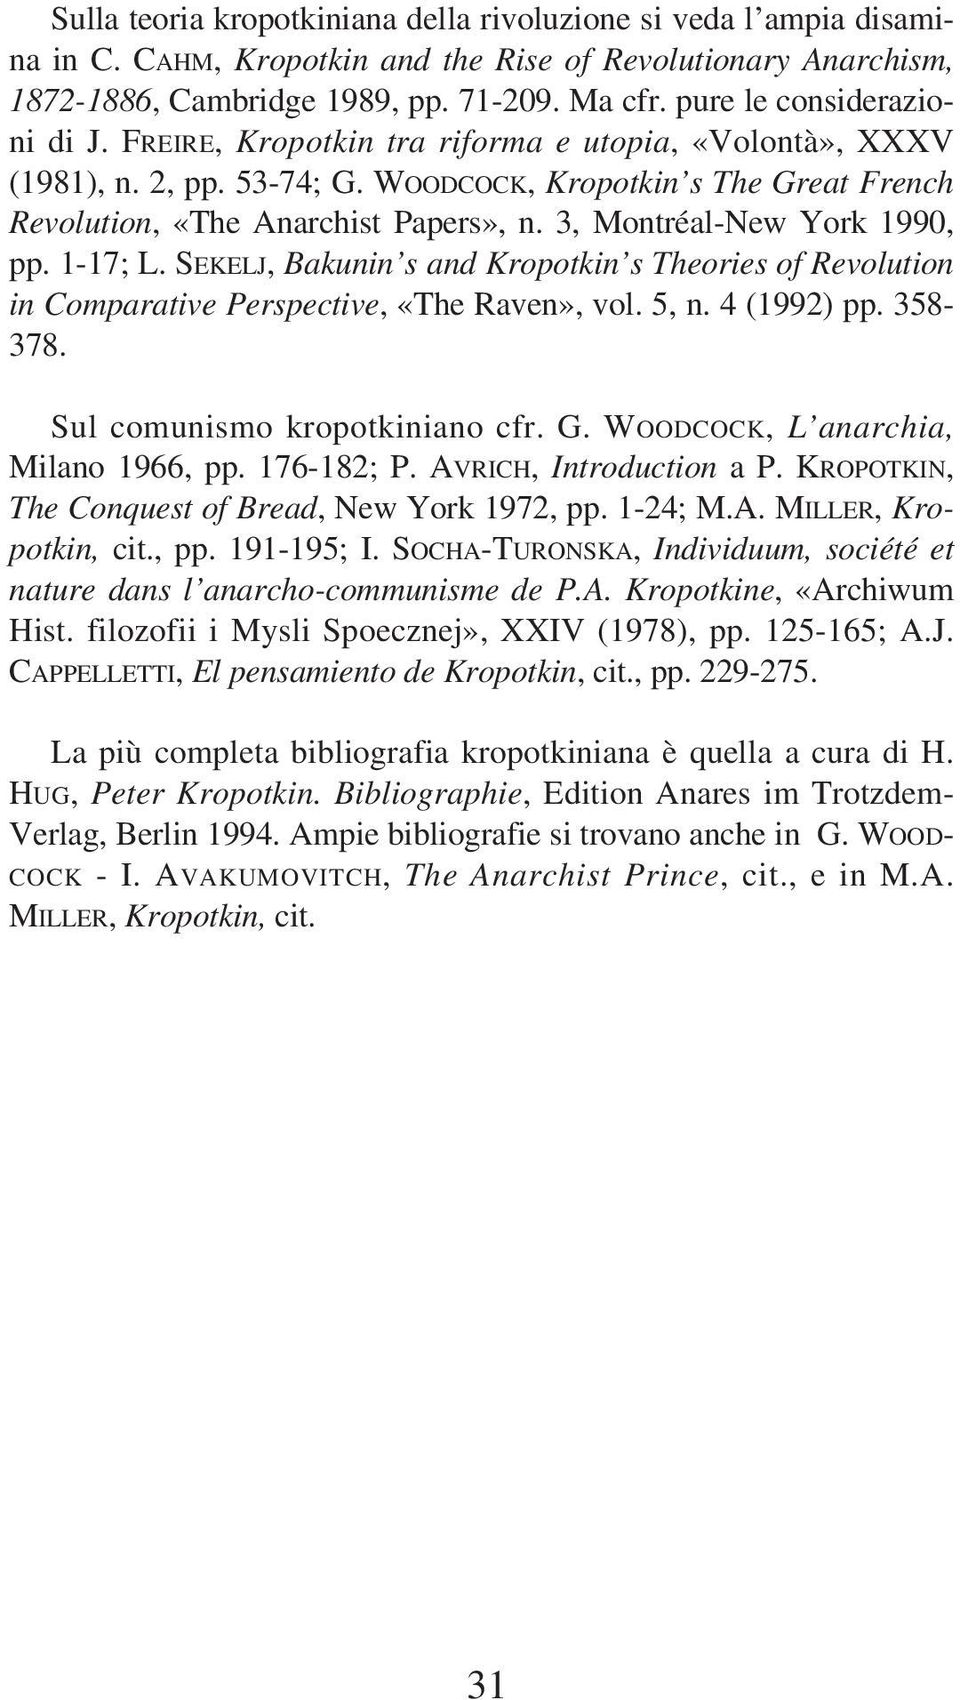 3, Montréal-New York 1990, pp. 1-17; L. SEKELJ, Bakunin s and Kropotkin s Theories of Revolution in Comparative Perspective, «The Raven», vol. 5, n. 4 (1992) pp. 358-378.